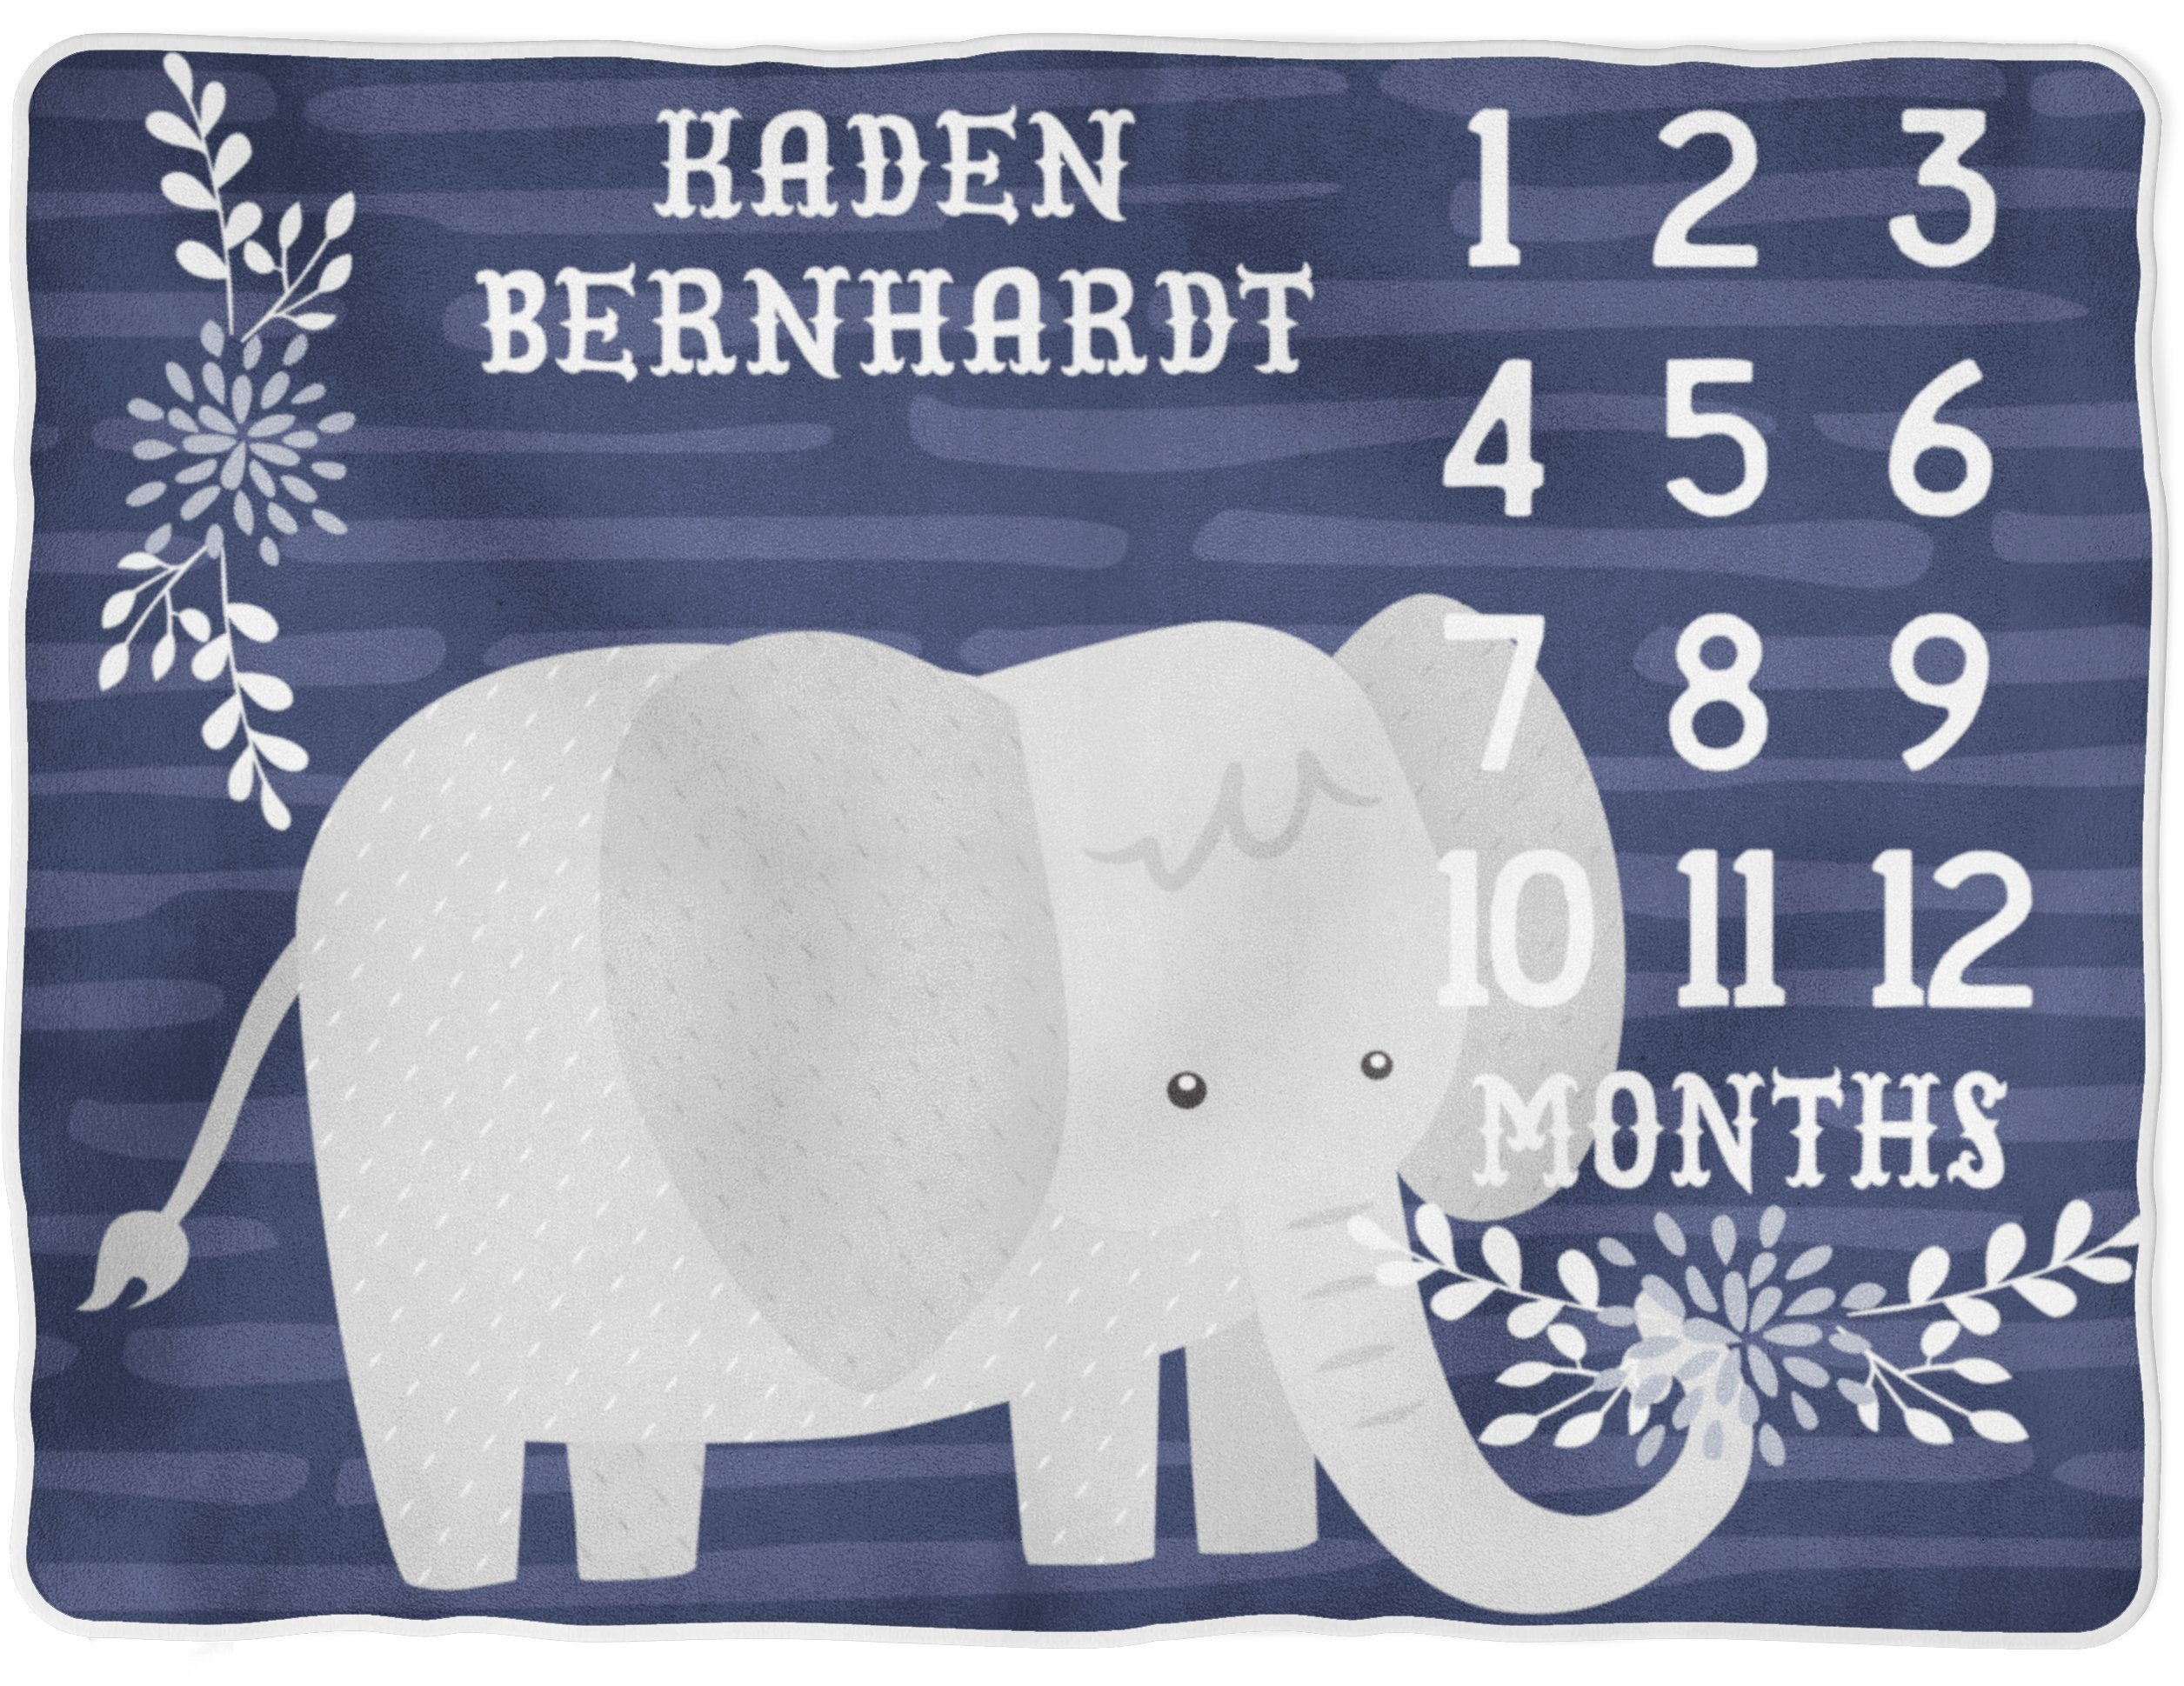 Elephant Milestone Blanket - Baby Boy Blue Blanket with Months - Monthly Growth Tracker - Photo Prop - Personalized Newborn Shower Gift (50x60) by Sobilar (Image #1)